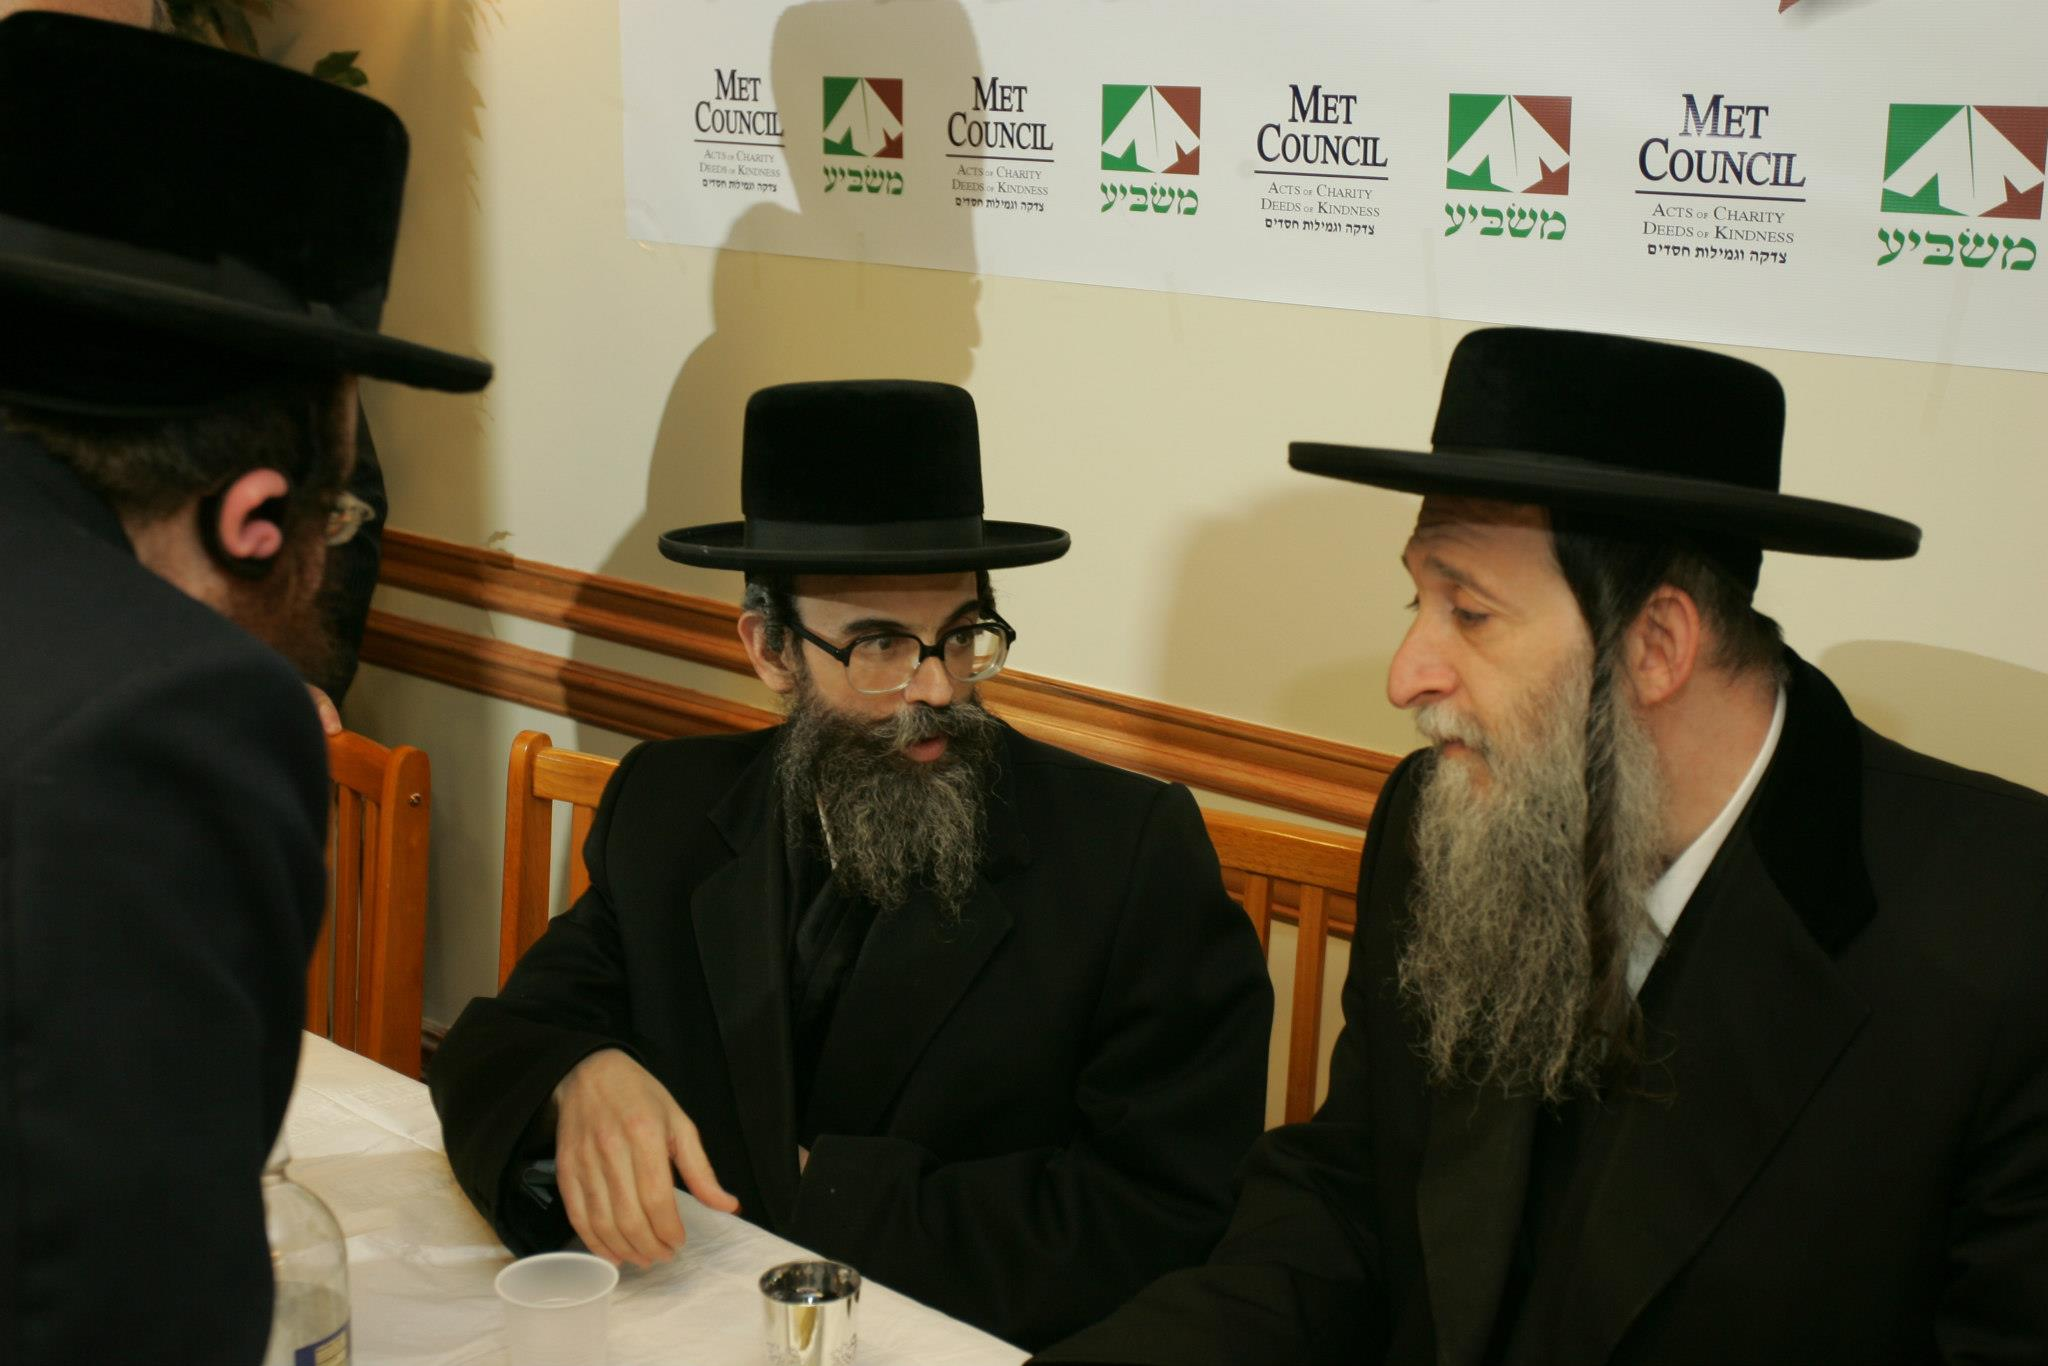 Masbia_Supporter__Rabbi_Yitzchak_Shimon_Wosner__Dayan_Skver_Williamsburg__Visiting_Masbia_of_Williamsburg.jpg